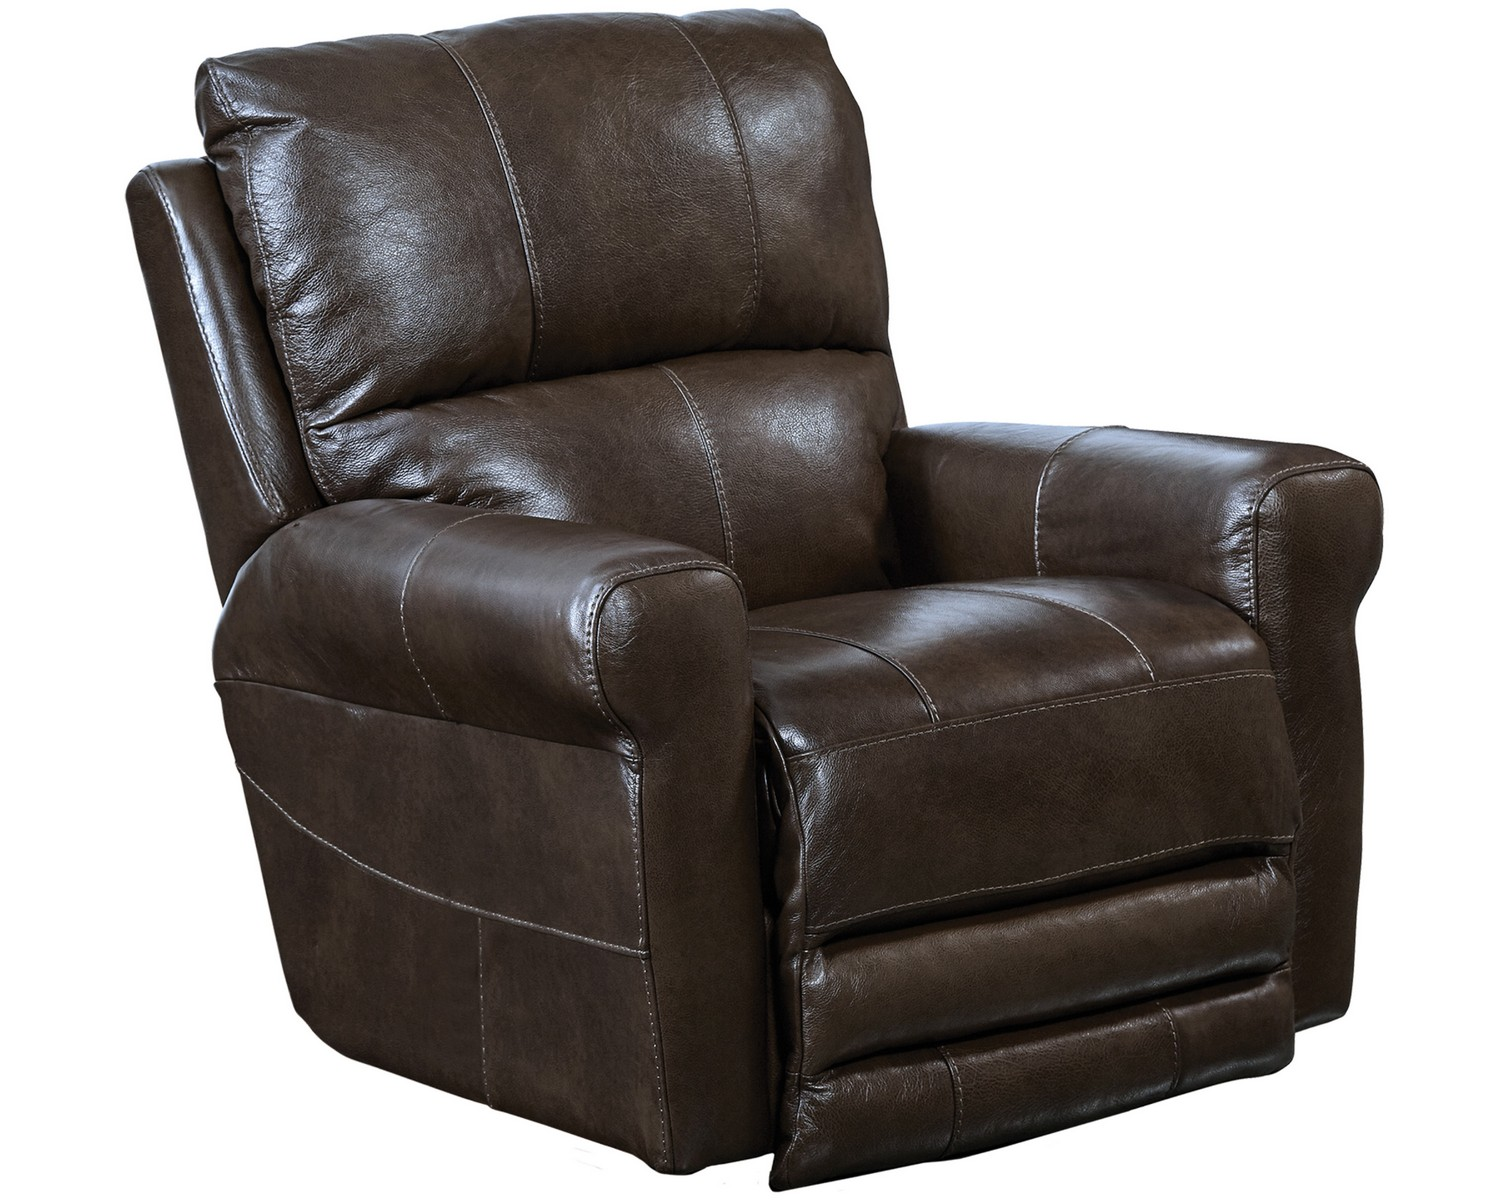 Leather Swivel Recliner Chairs Catnapper Hoffner Top Grain Leather Touch Swivel Glider